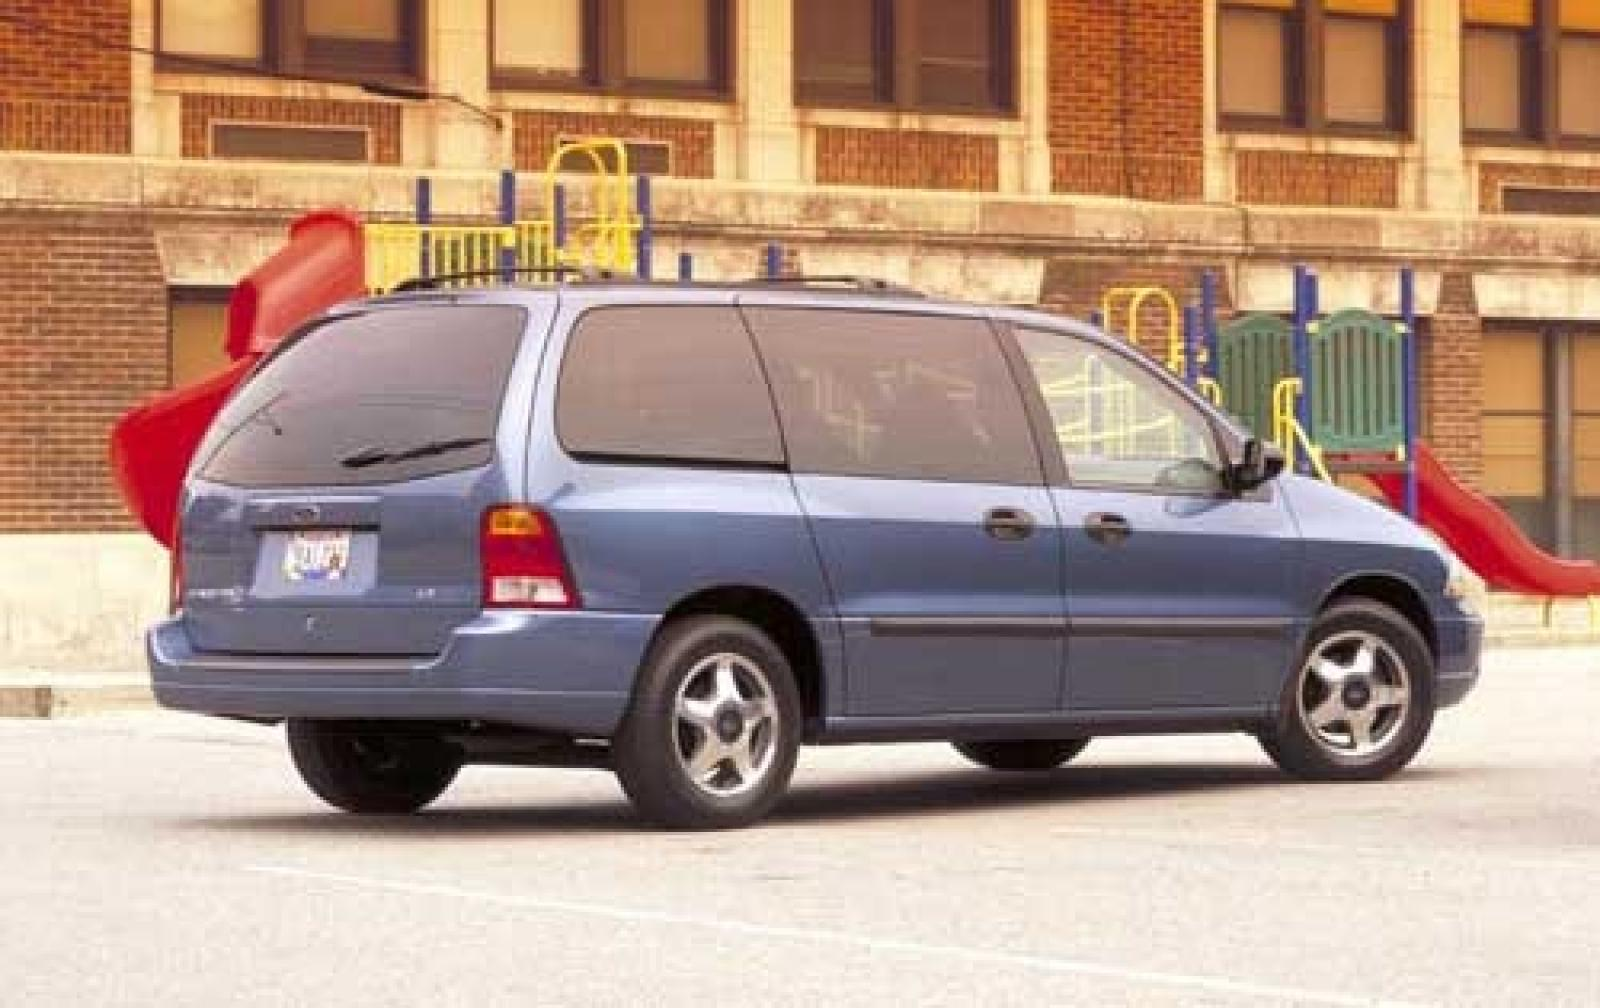 2003 Ford Windstar Information And Photos Zombiedrive Sel 800 1024 1280 1600 Origin